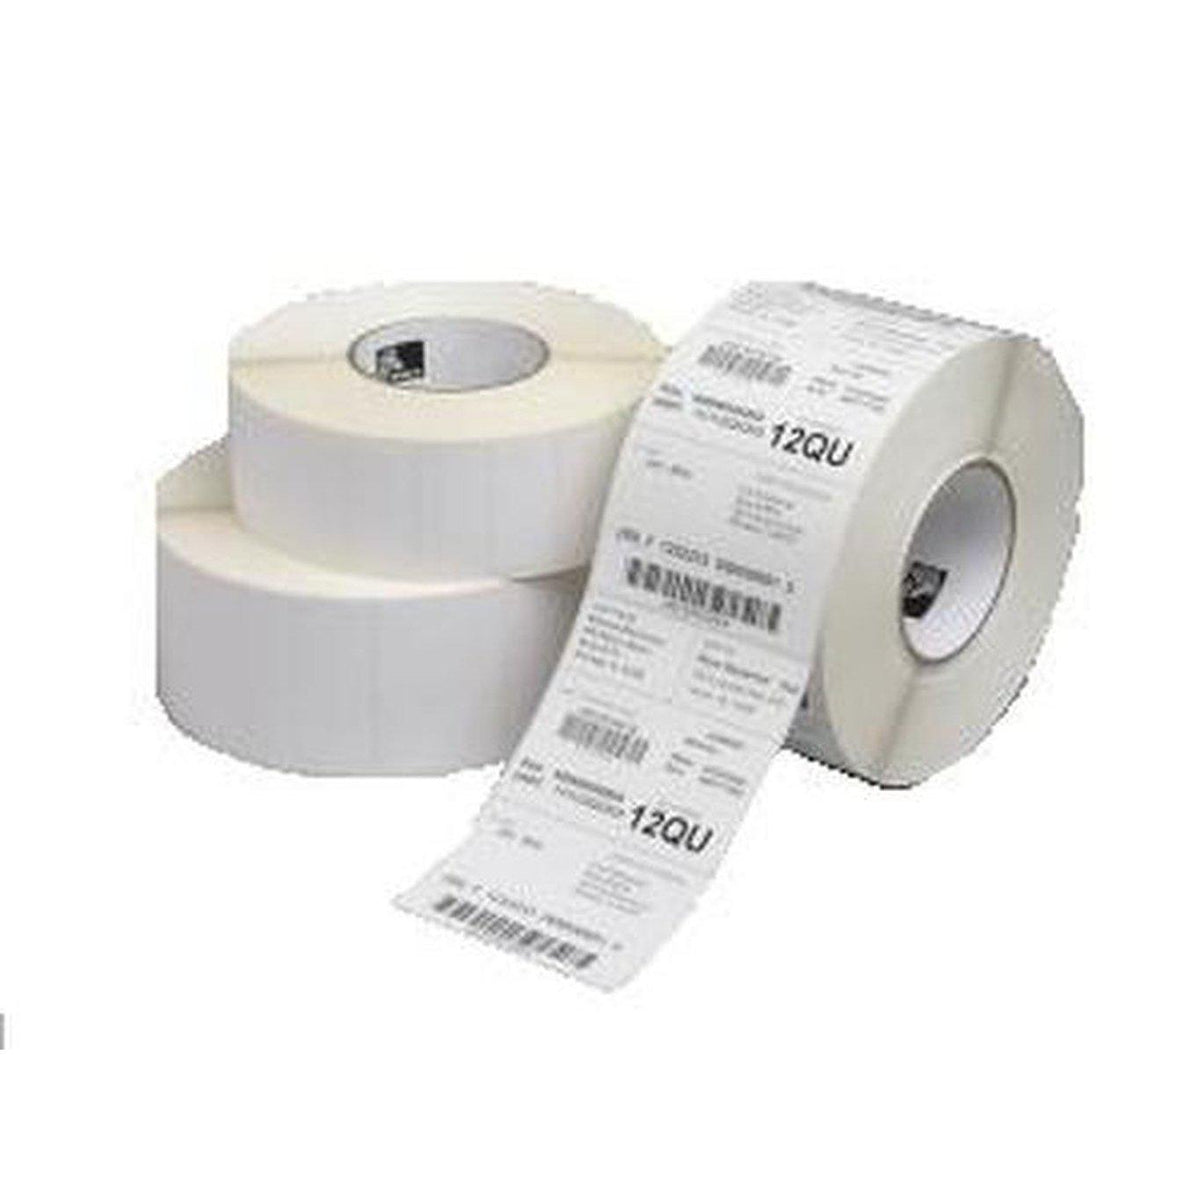 Zebra Z-Perform 1000T Thermal Transfer Paper Label 64mm x 51mm, White | 3004486 Consumable Zebra